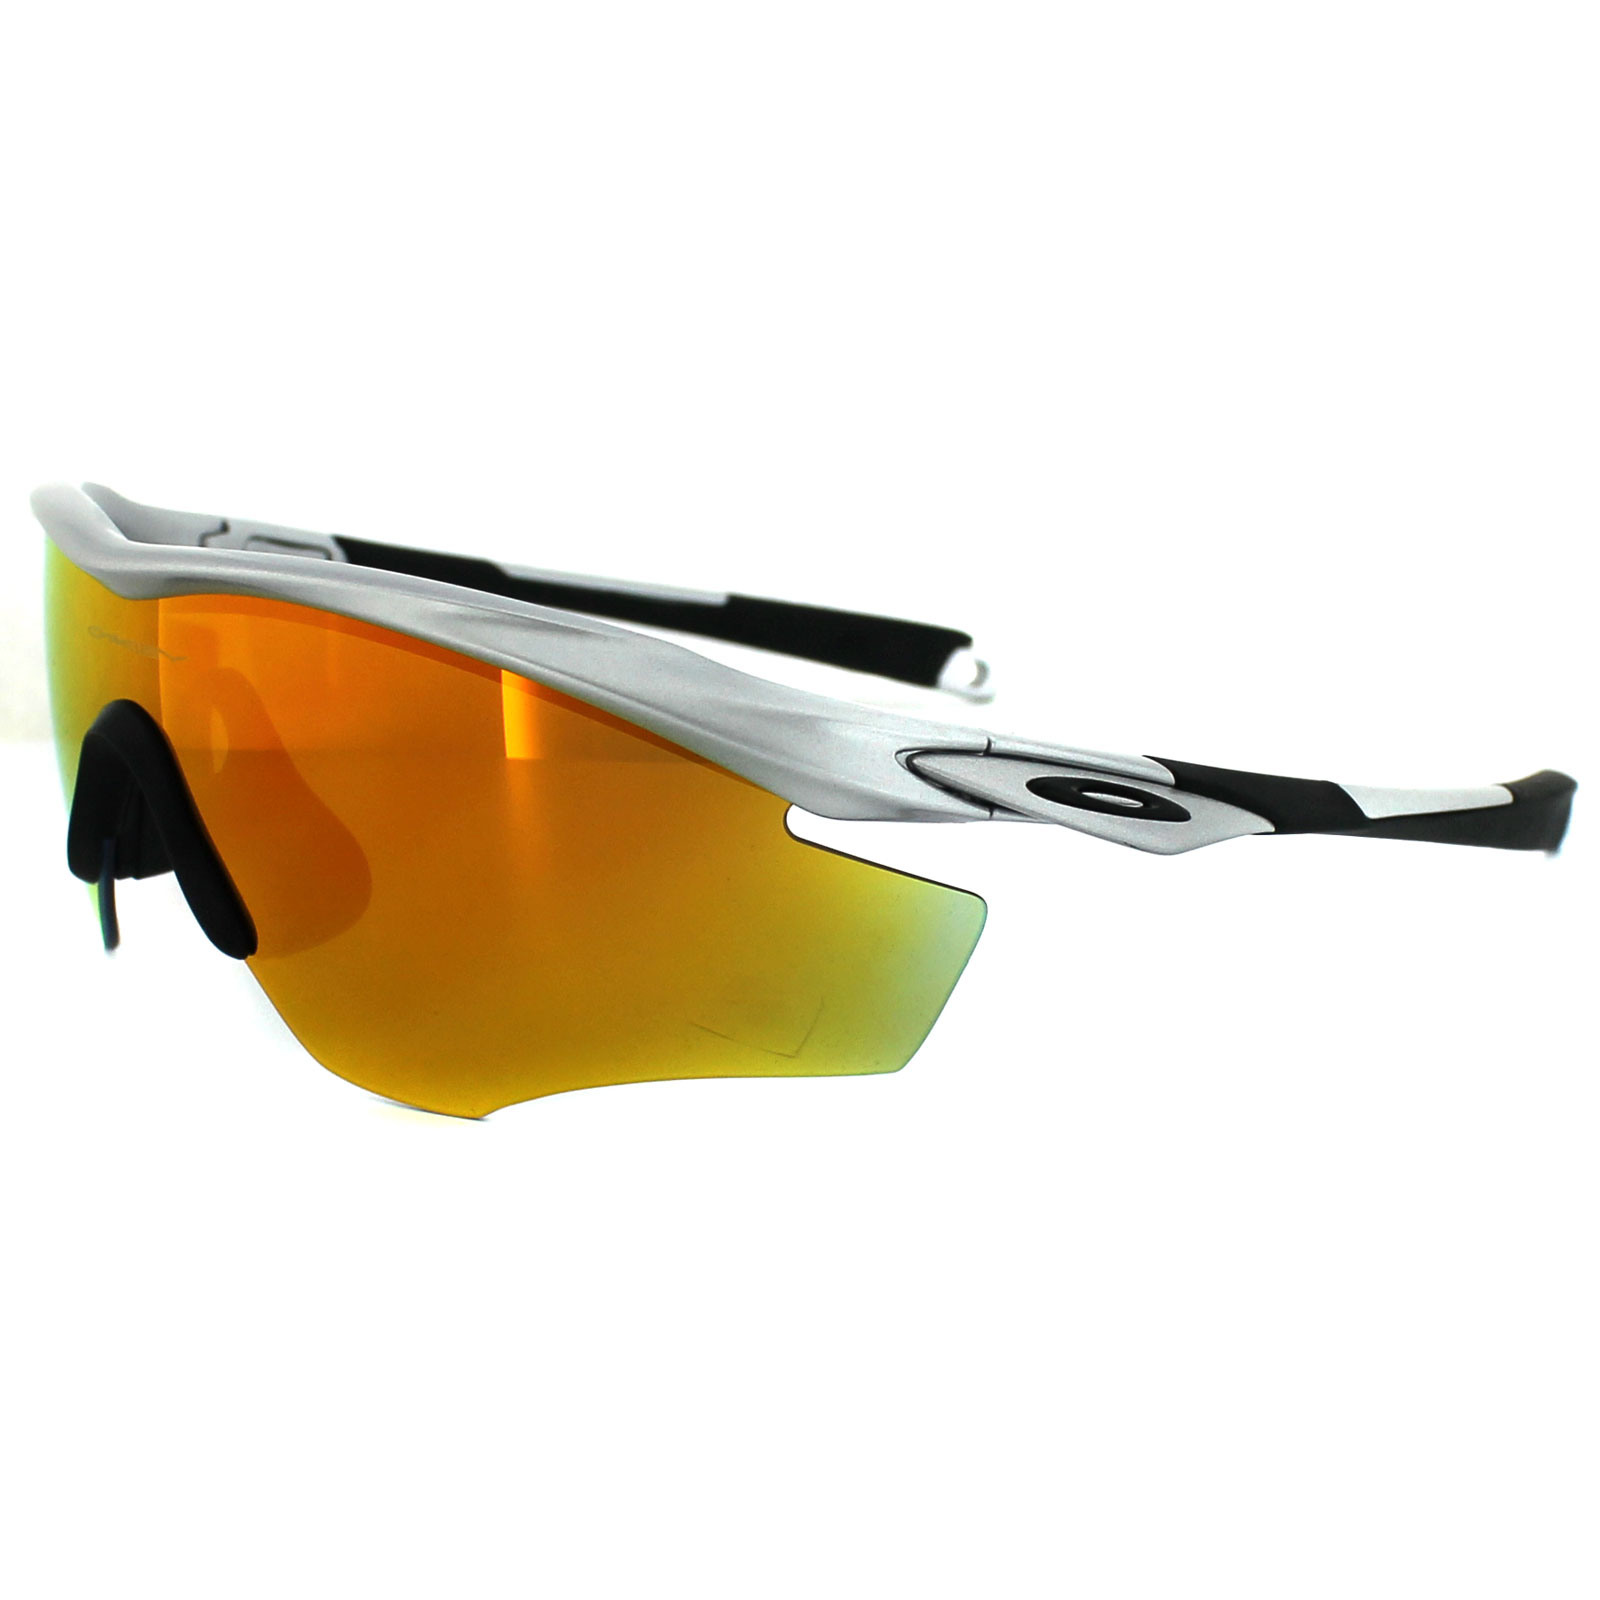 earsocks for oakley straight jacket 6ysj  Sentinel Oakley Sunglasses M2 Frame OO9212-04 Silver Fire Iridium